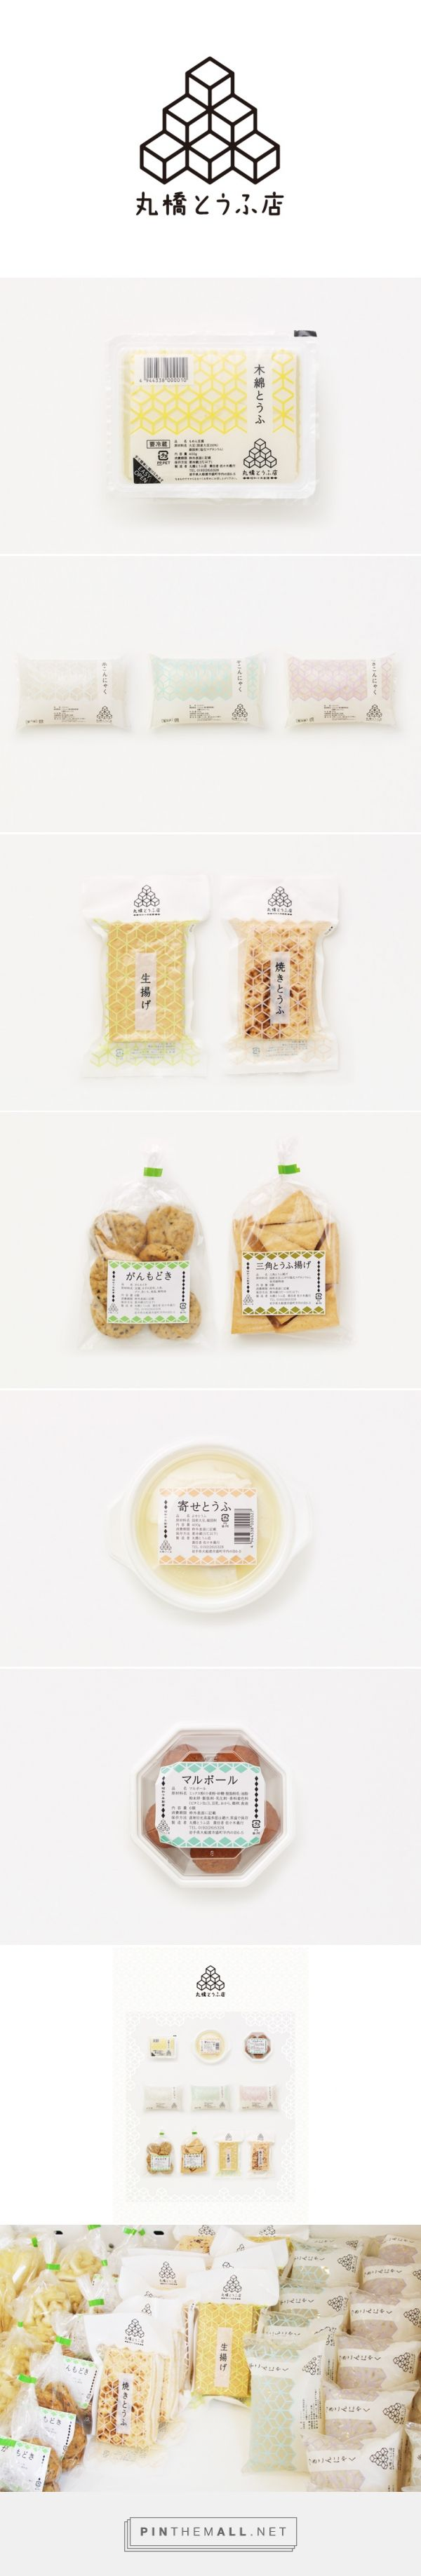 Designer ISHIHARA ERI for Maruhashi Tofu Store curated by Packaging Diva PD. Isn't this simple but lovely packaging?